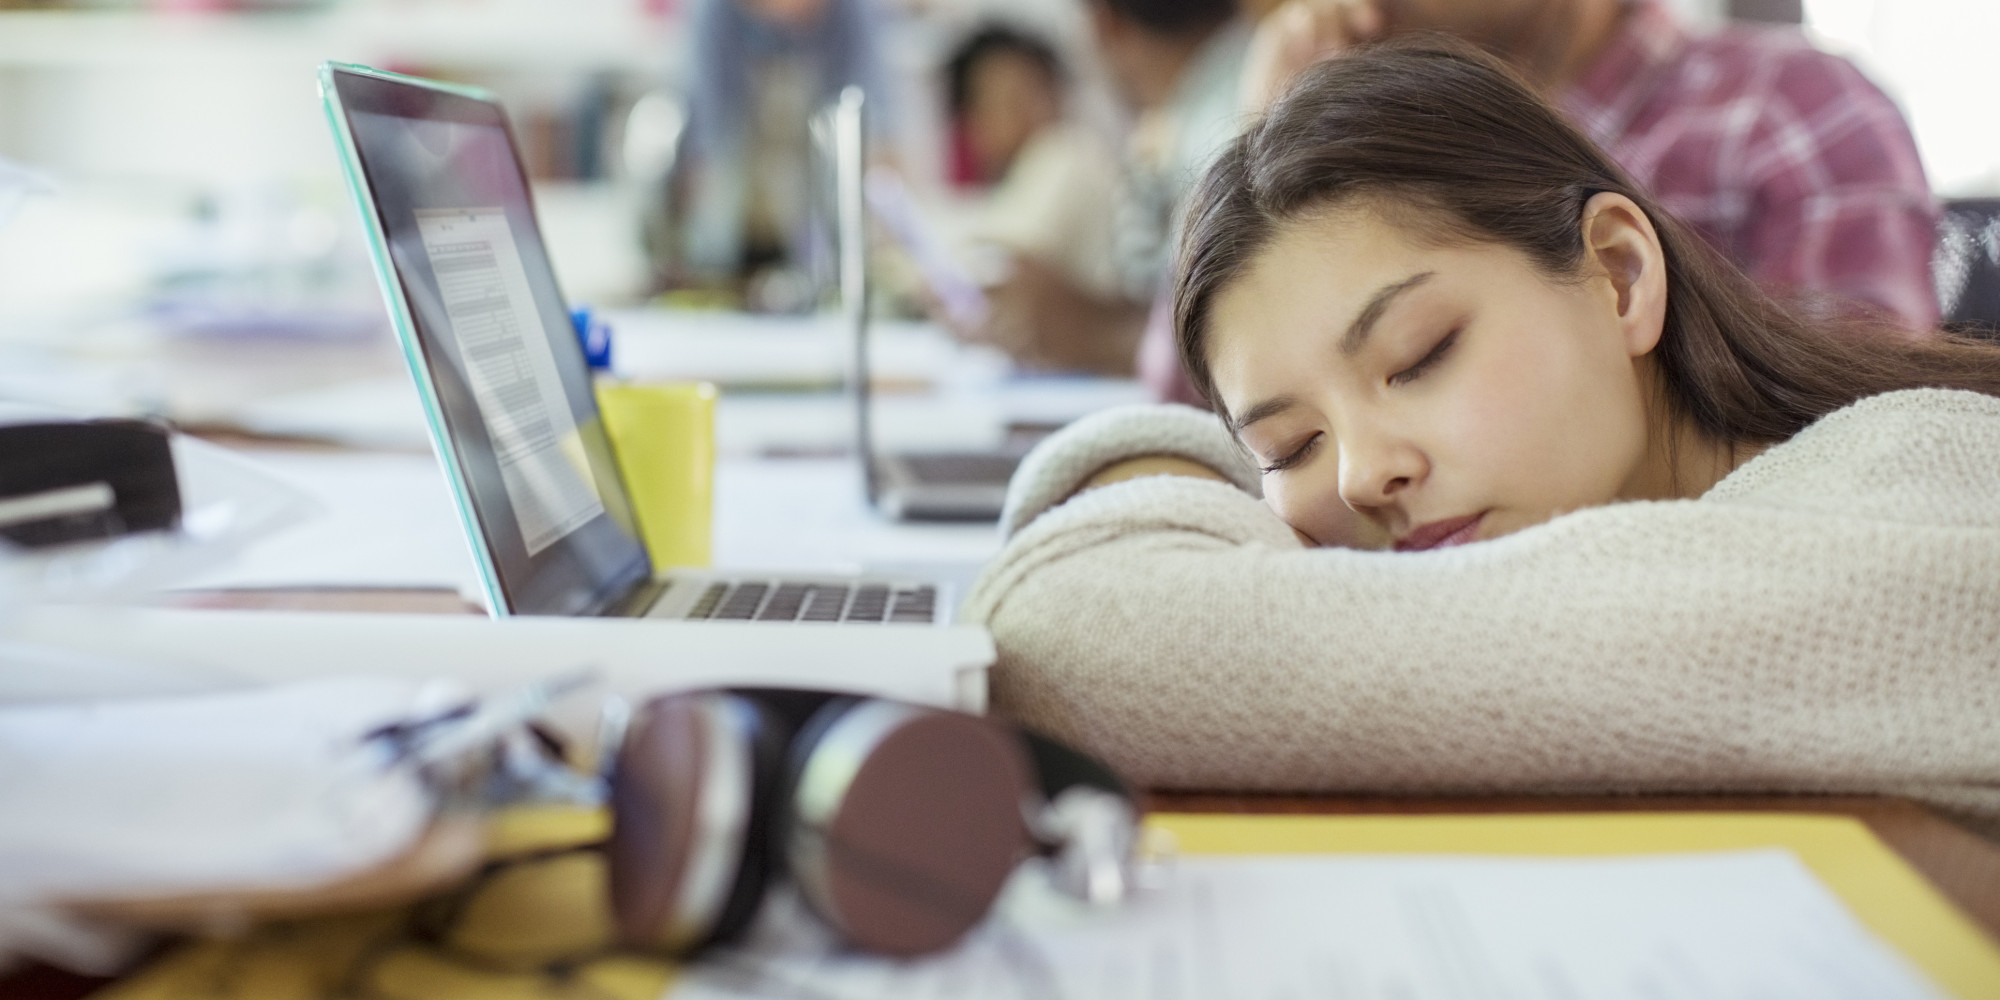 Is there anything worse than midday drowsiness? One minute you're powering through a project, the next, your eyelids feel like they're loaded with lead. Talk about a productivity killer. We've all experienced the 3 p.m. lull that makes an unwelcom...